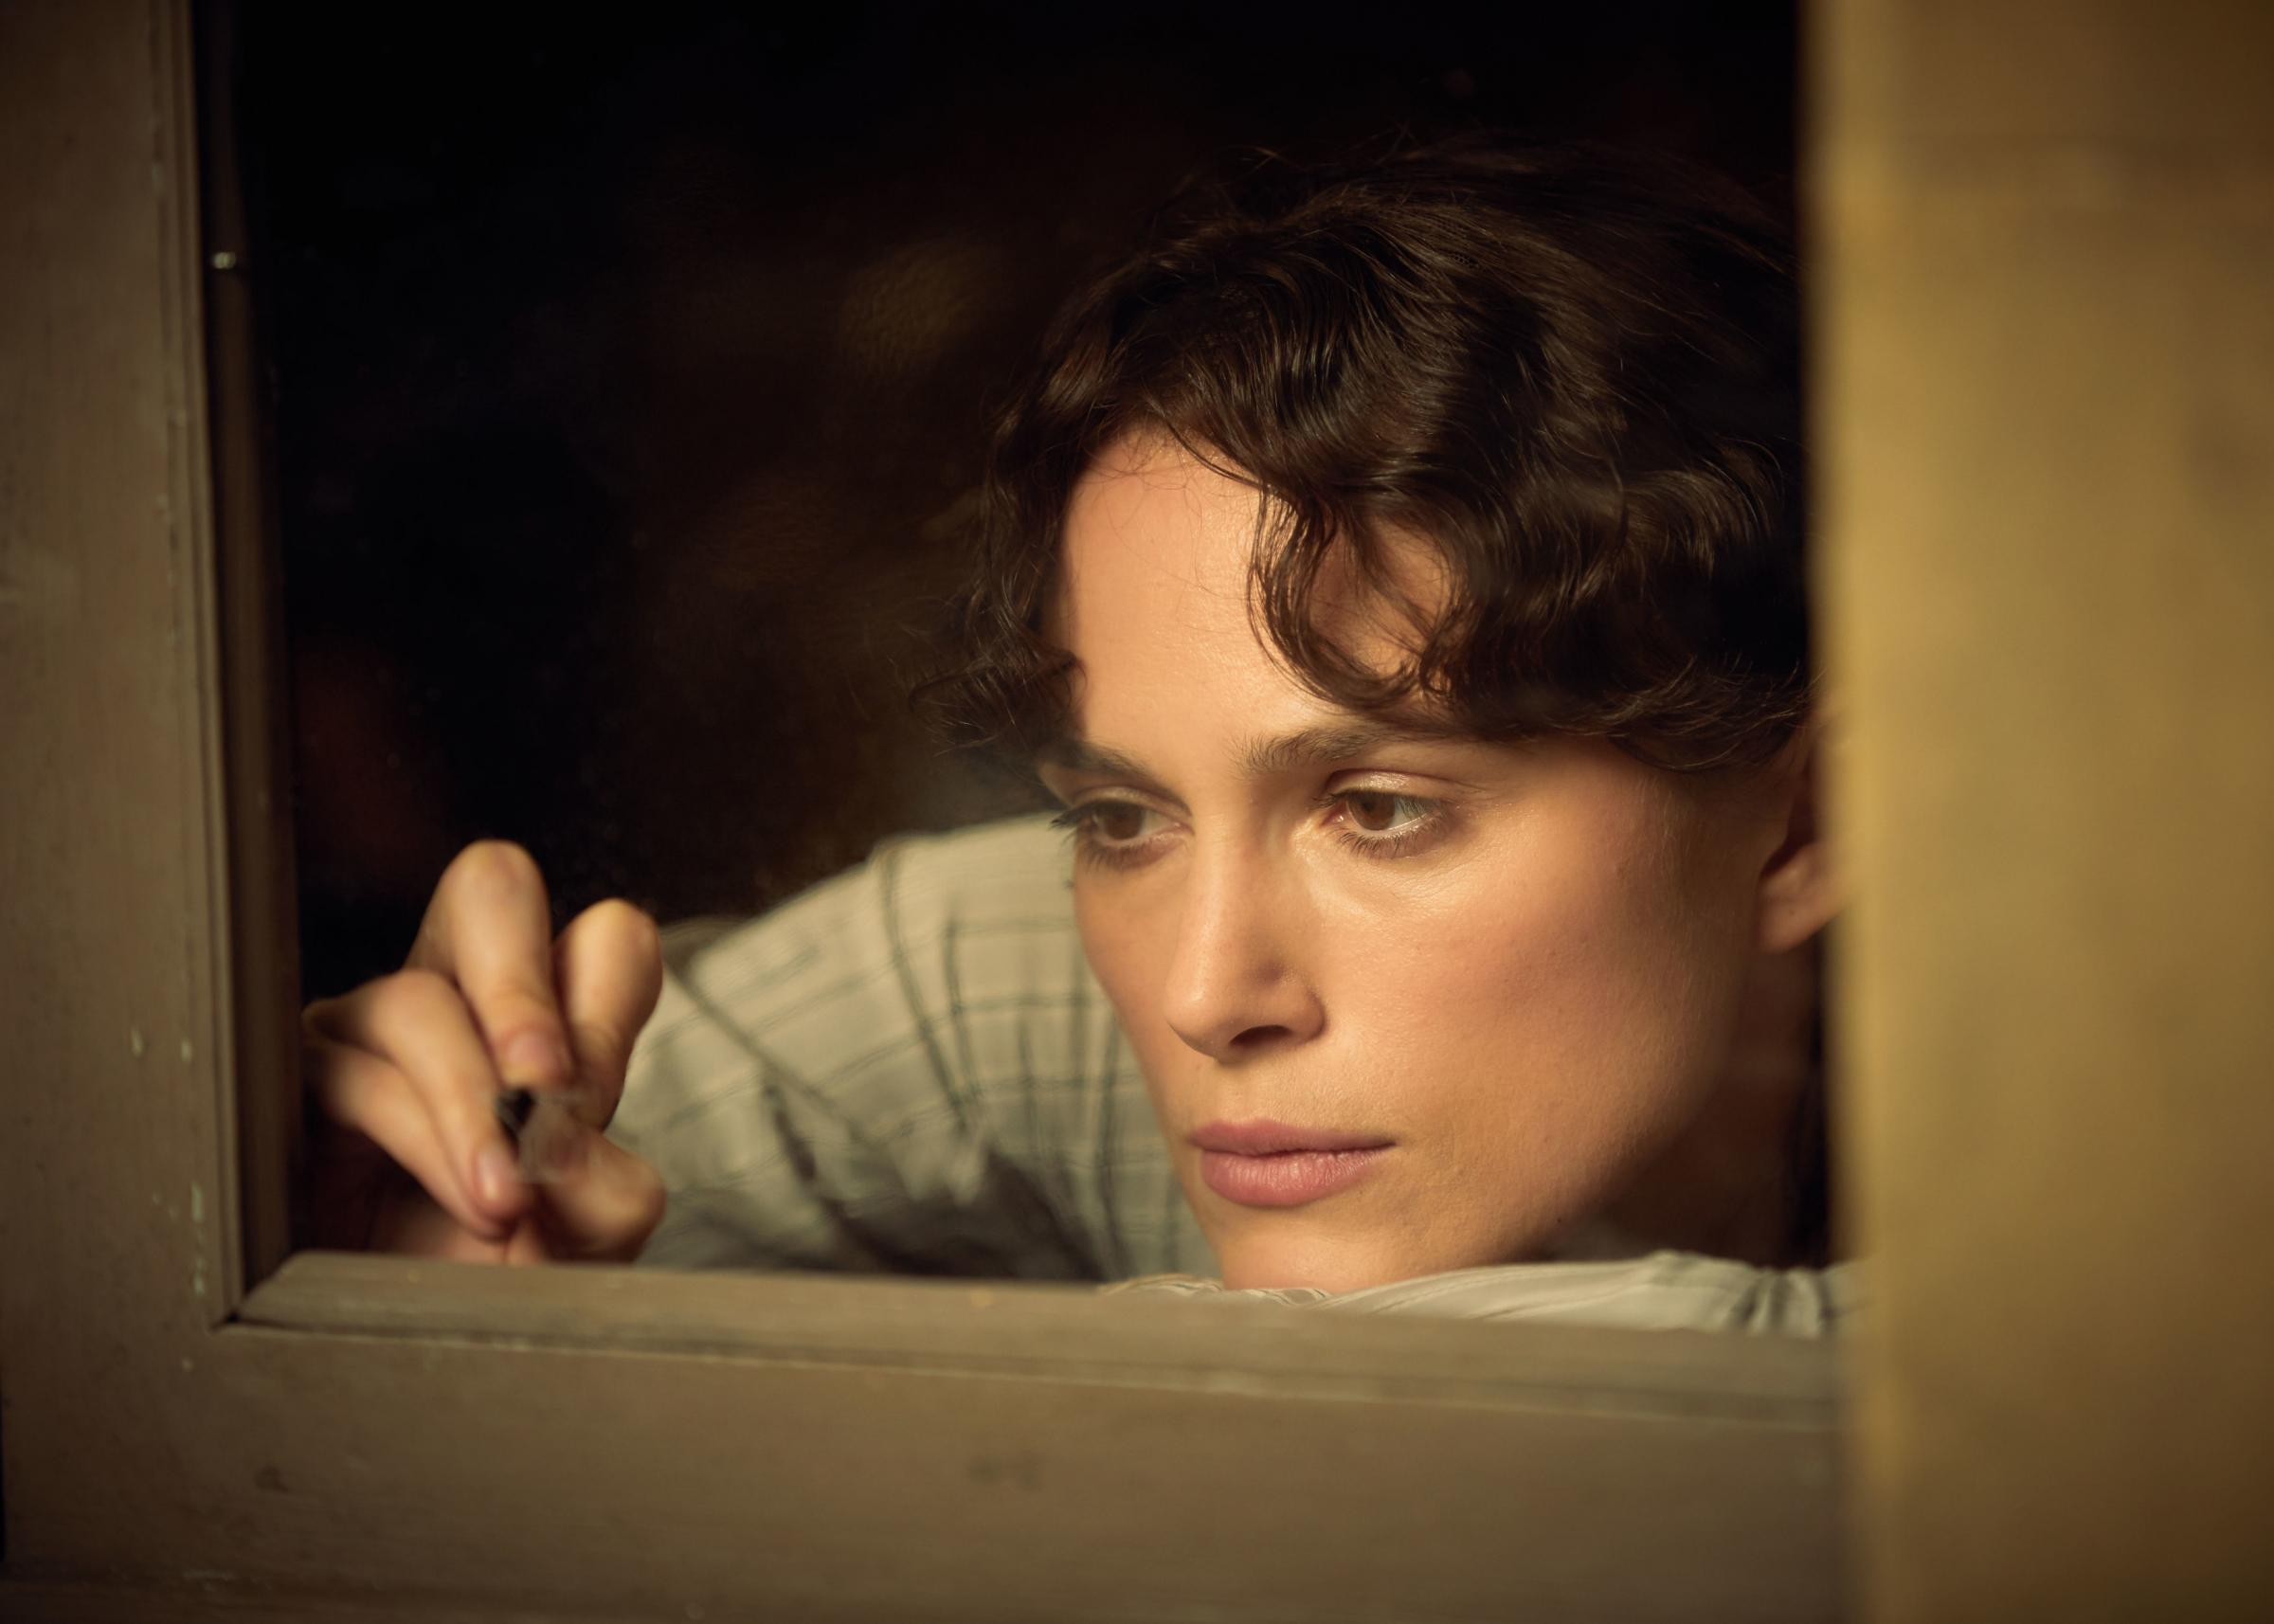 Undated film still handout from Colette. Pictured: Keira Knightley as Sidonie-Gabrielle Colette. See PA Feature SHOWBIZ Film Reviews. Picture credit should read: PA Photo/Lionsgate Films. All Rights Reserved. WARNING: This picture must only be used to ac